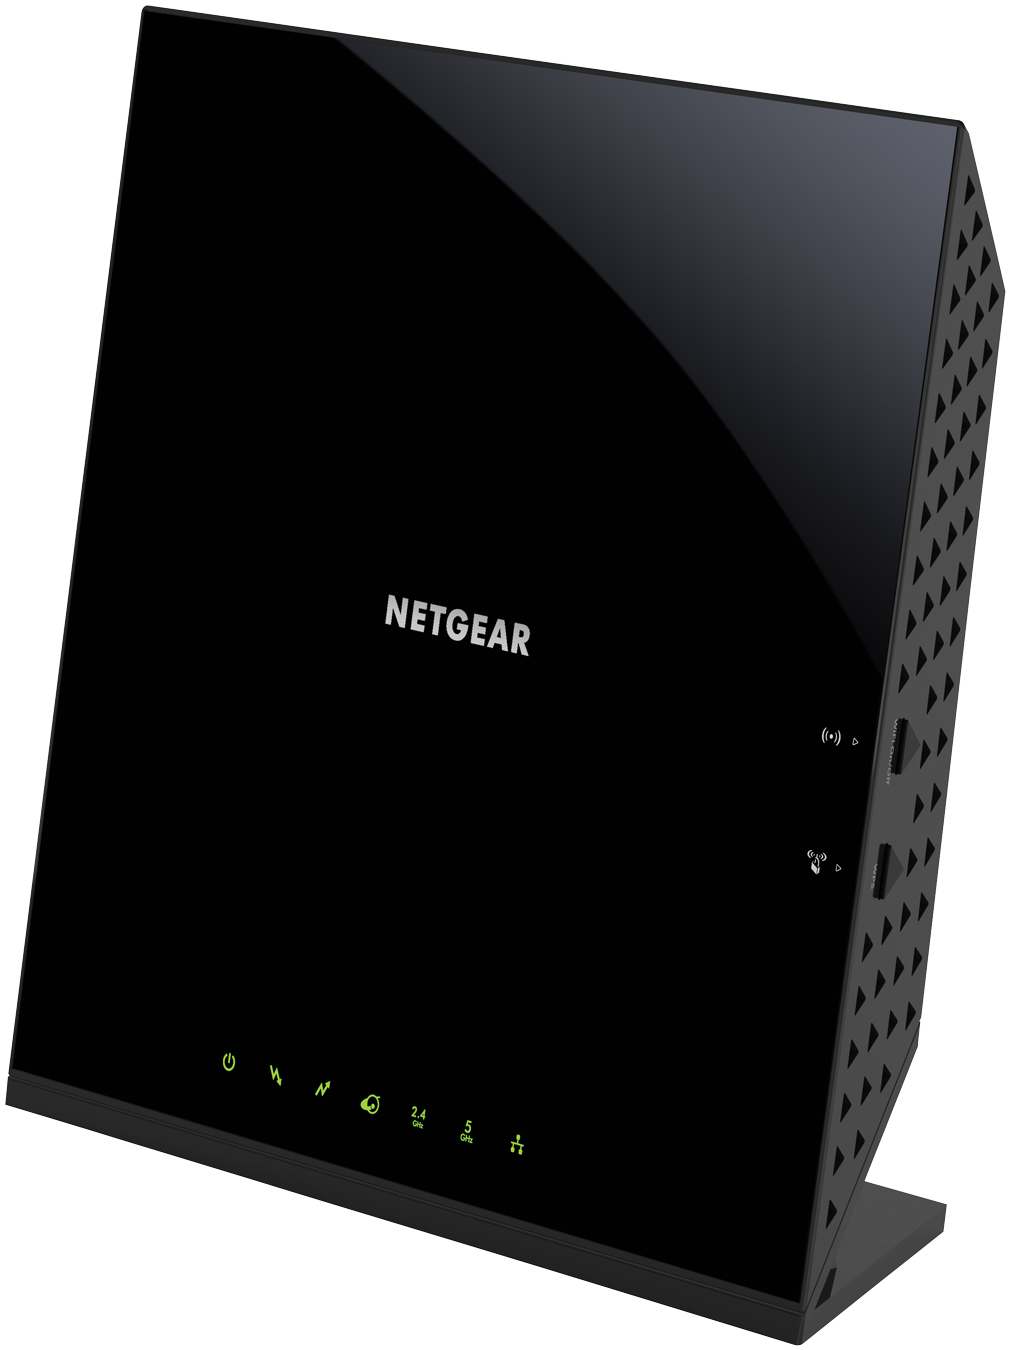 NETGEAR AC1600 (16x4) WiFi Cable Modem Router Combo. DOCSIS 3.0, Certified for Xfinity Comcast, Time Warner Cable, Cox,... by NETGEAR